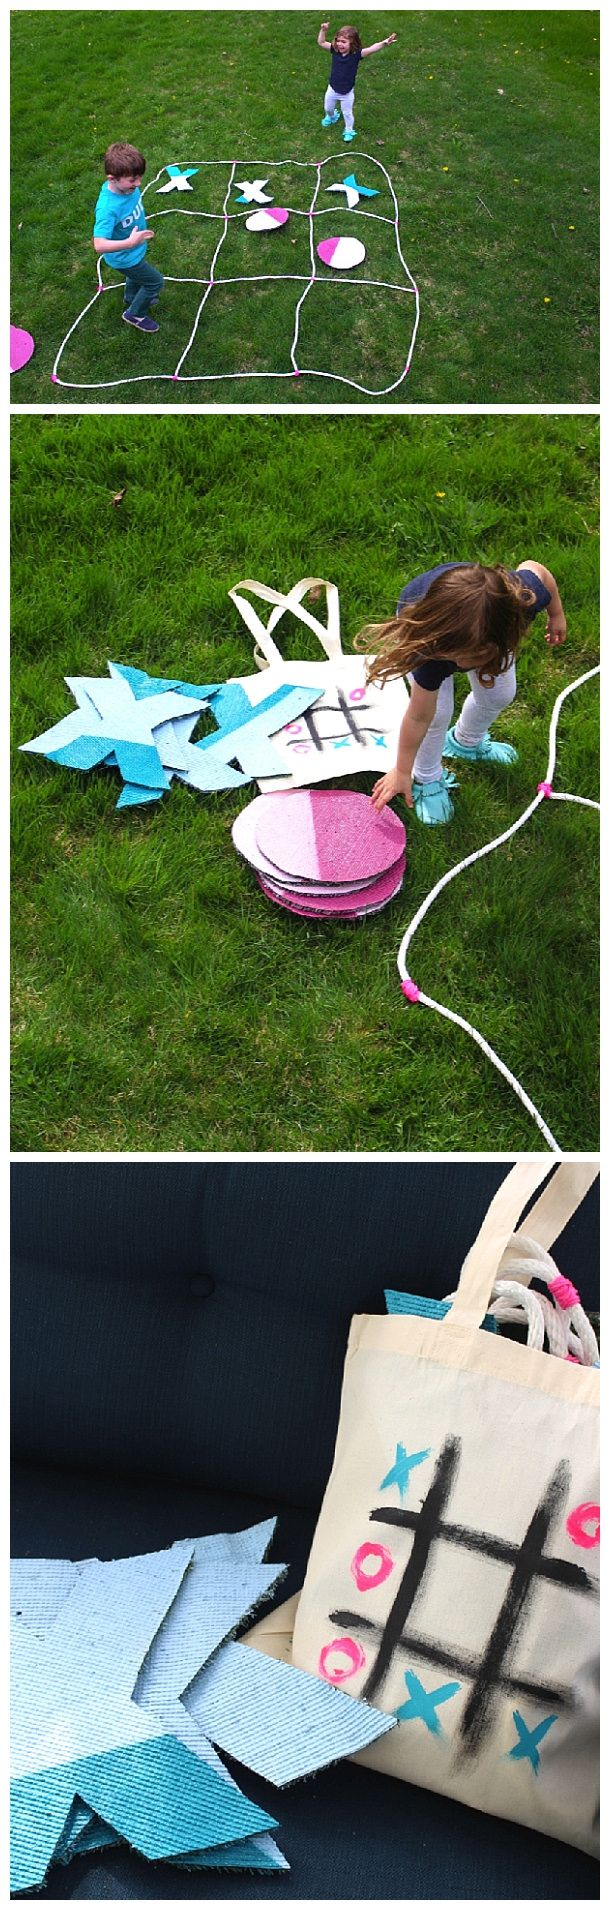 Do It Yourself Outdoor Party Games The Best Backyard Entertainment Diy Projects Kinderparty Spiele Hinterhof Partys Party Im Freien